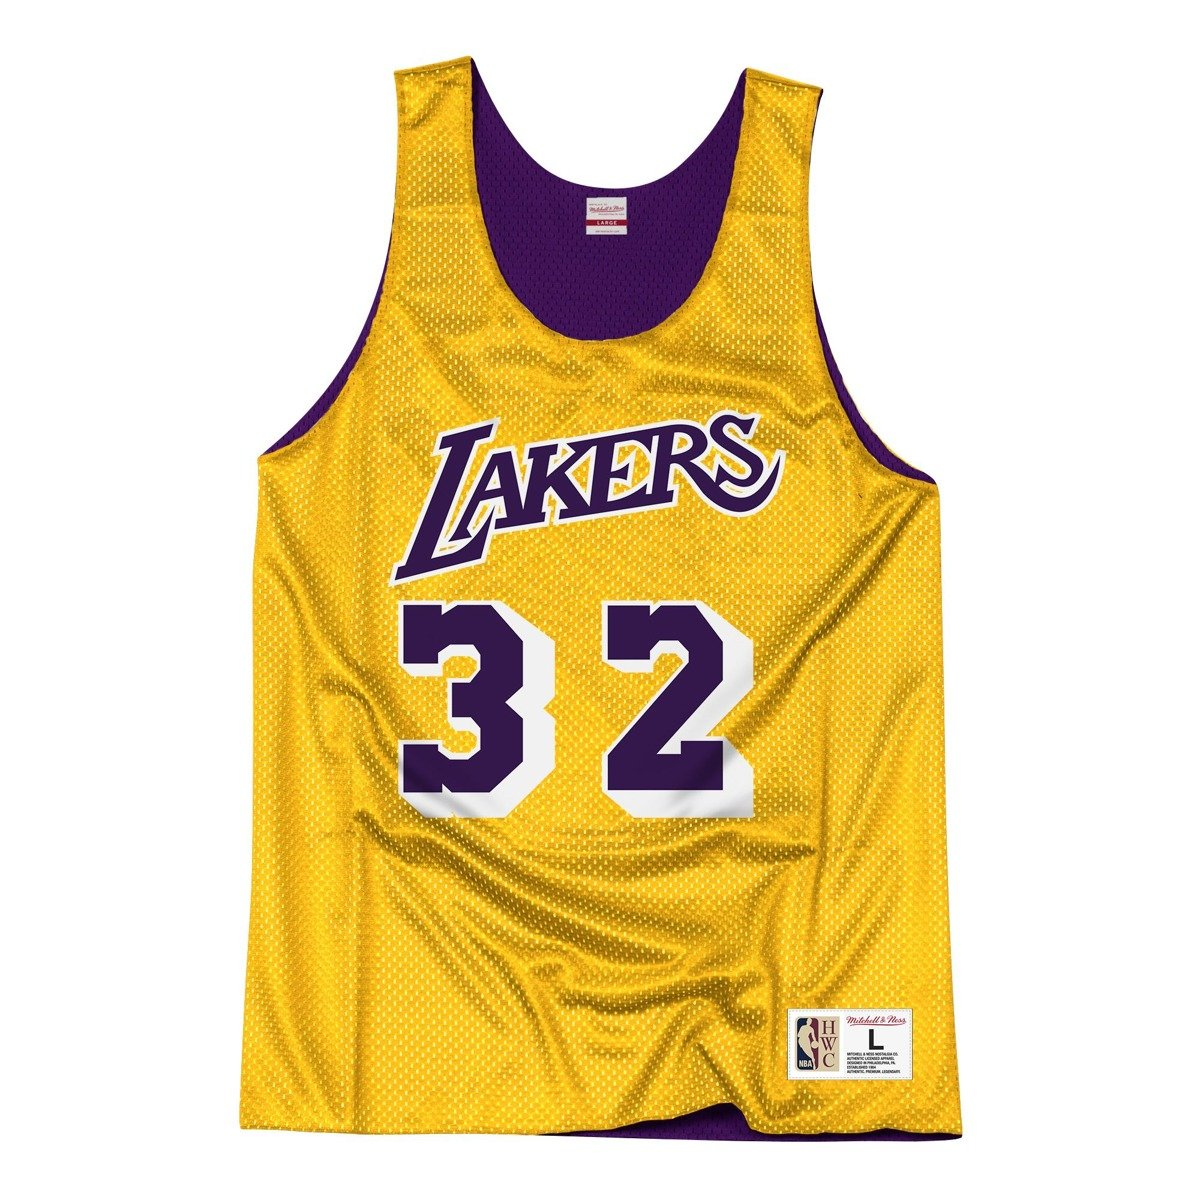 the best attitude 7150f 92ee4 Mitchell & Ness LA Lakers NBA Reversible Mesh Tank Earvin Johnson  NNRMDA18007-LALLGPR1EJH84